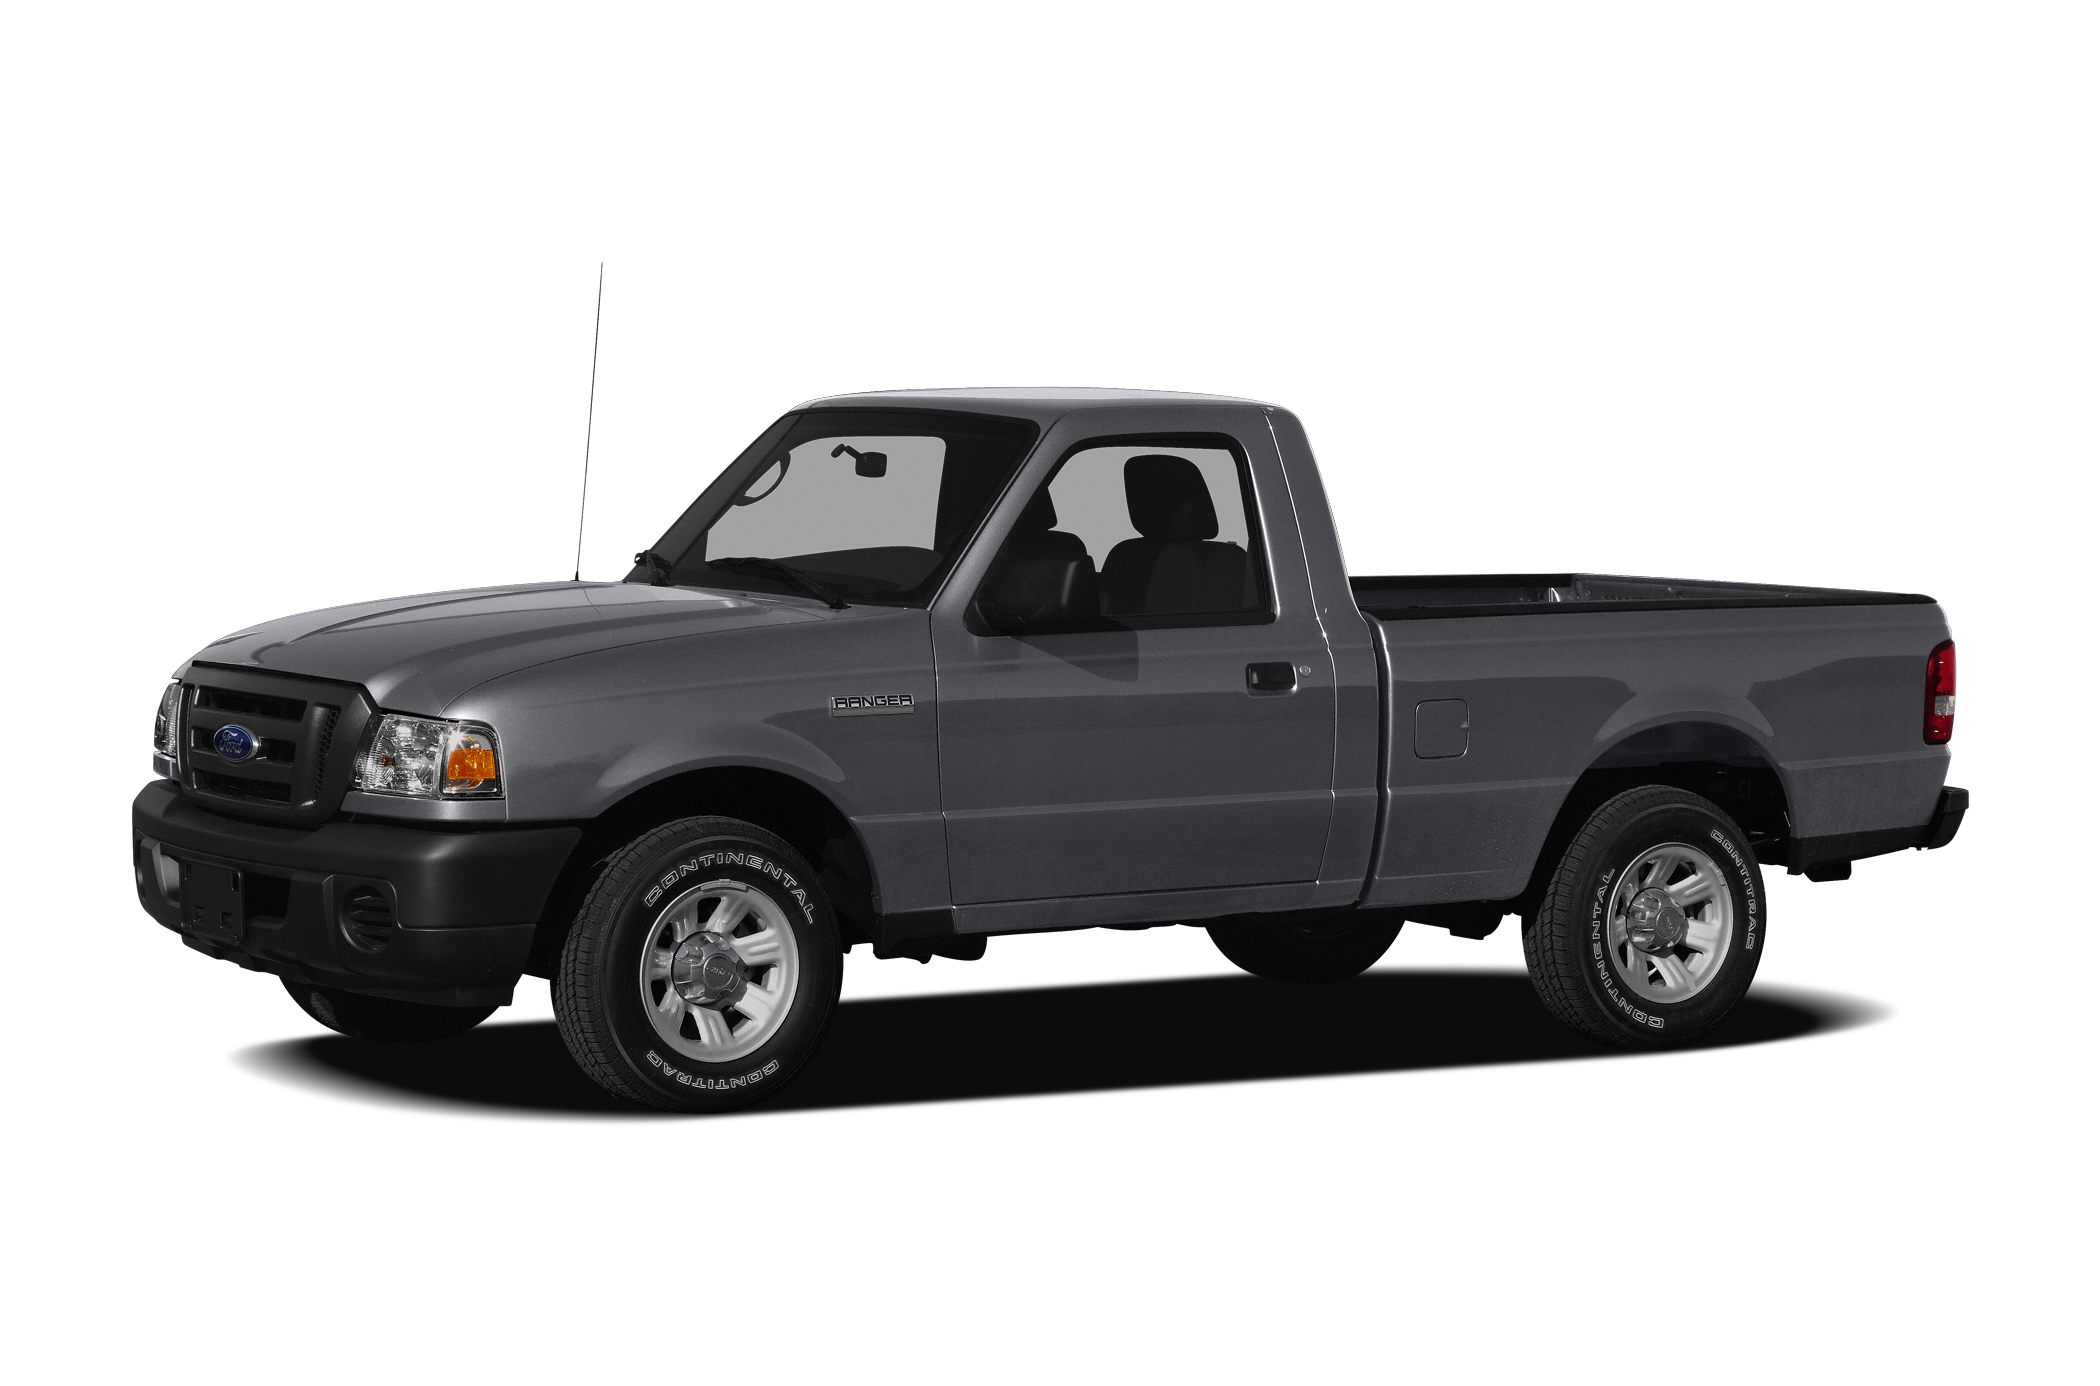 2010 Ford Ranger XLT Extended Cab Pickup for sale in Wooster for $16,500 with 20,055 miles